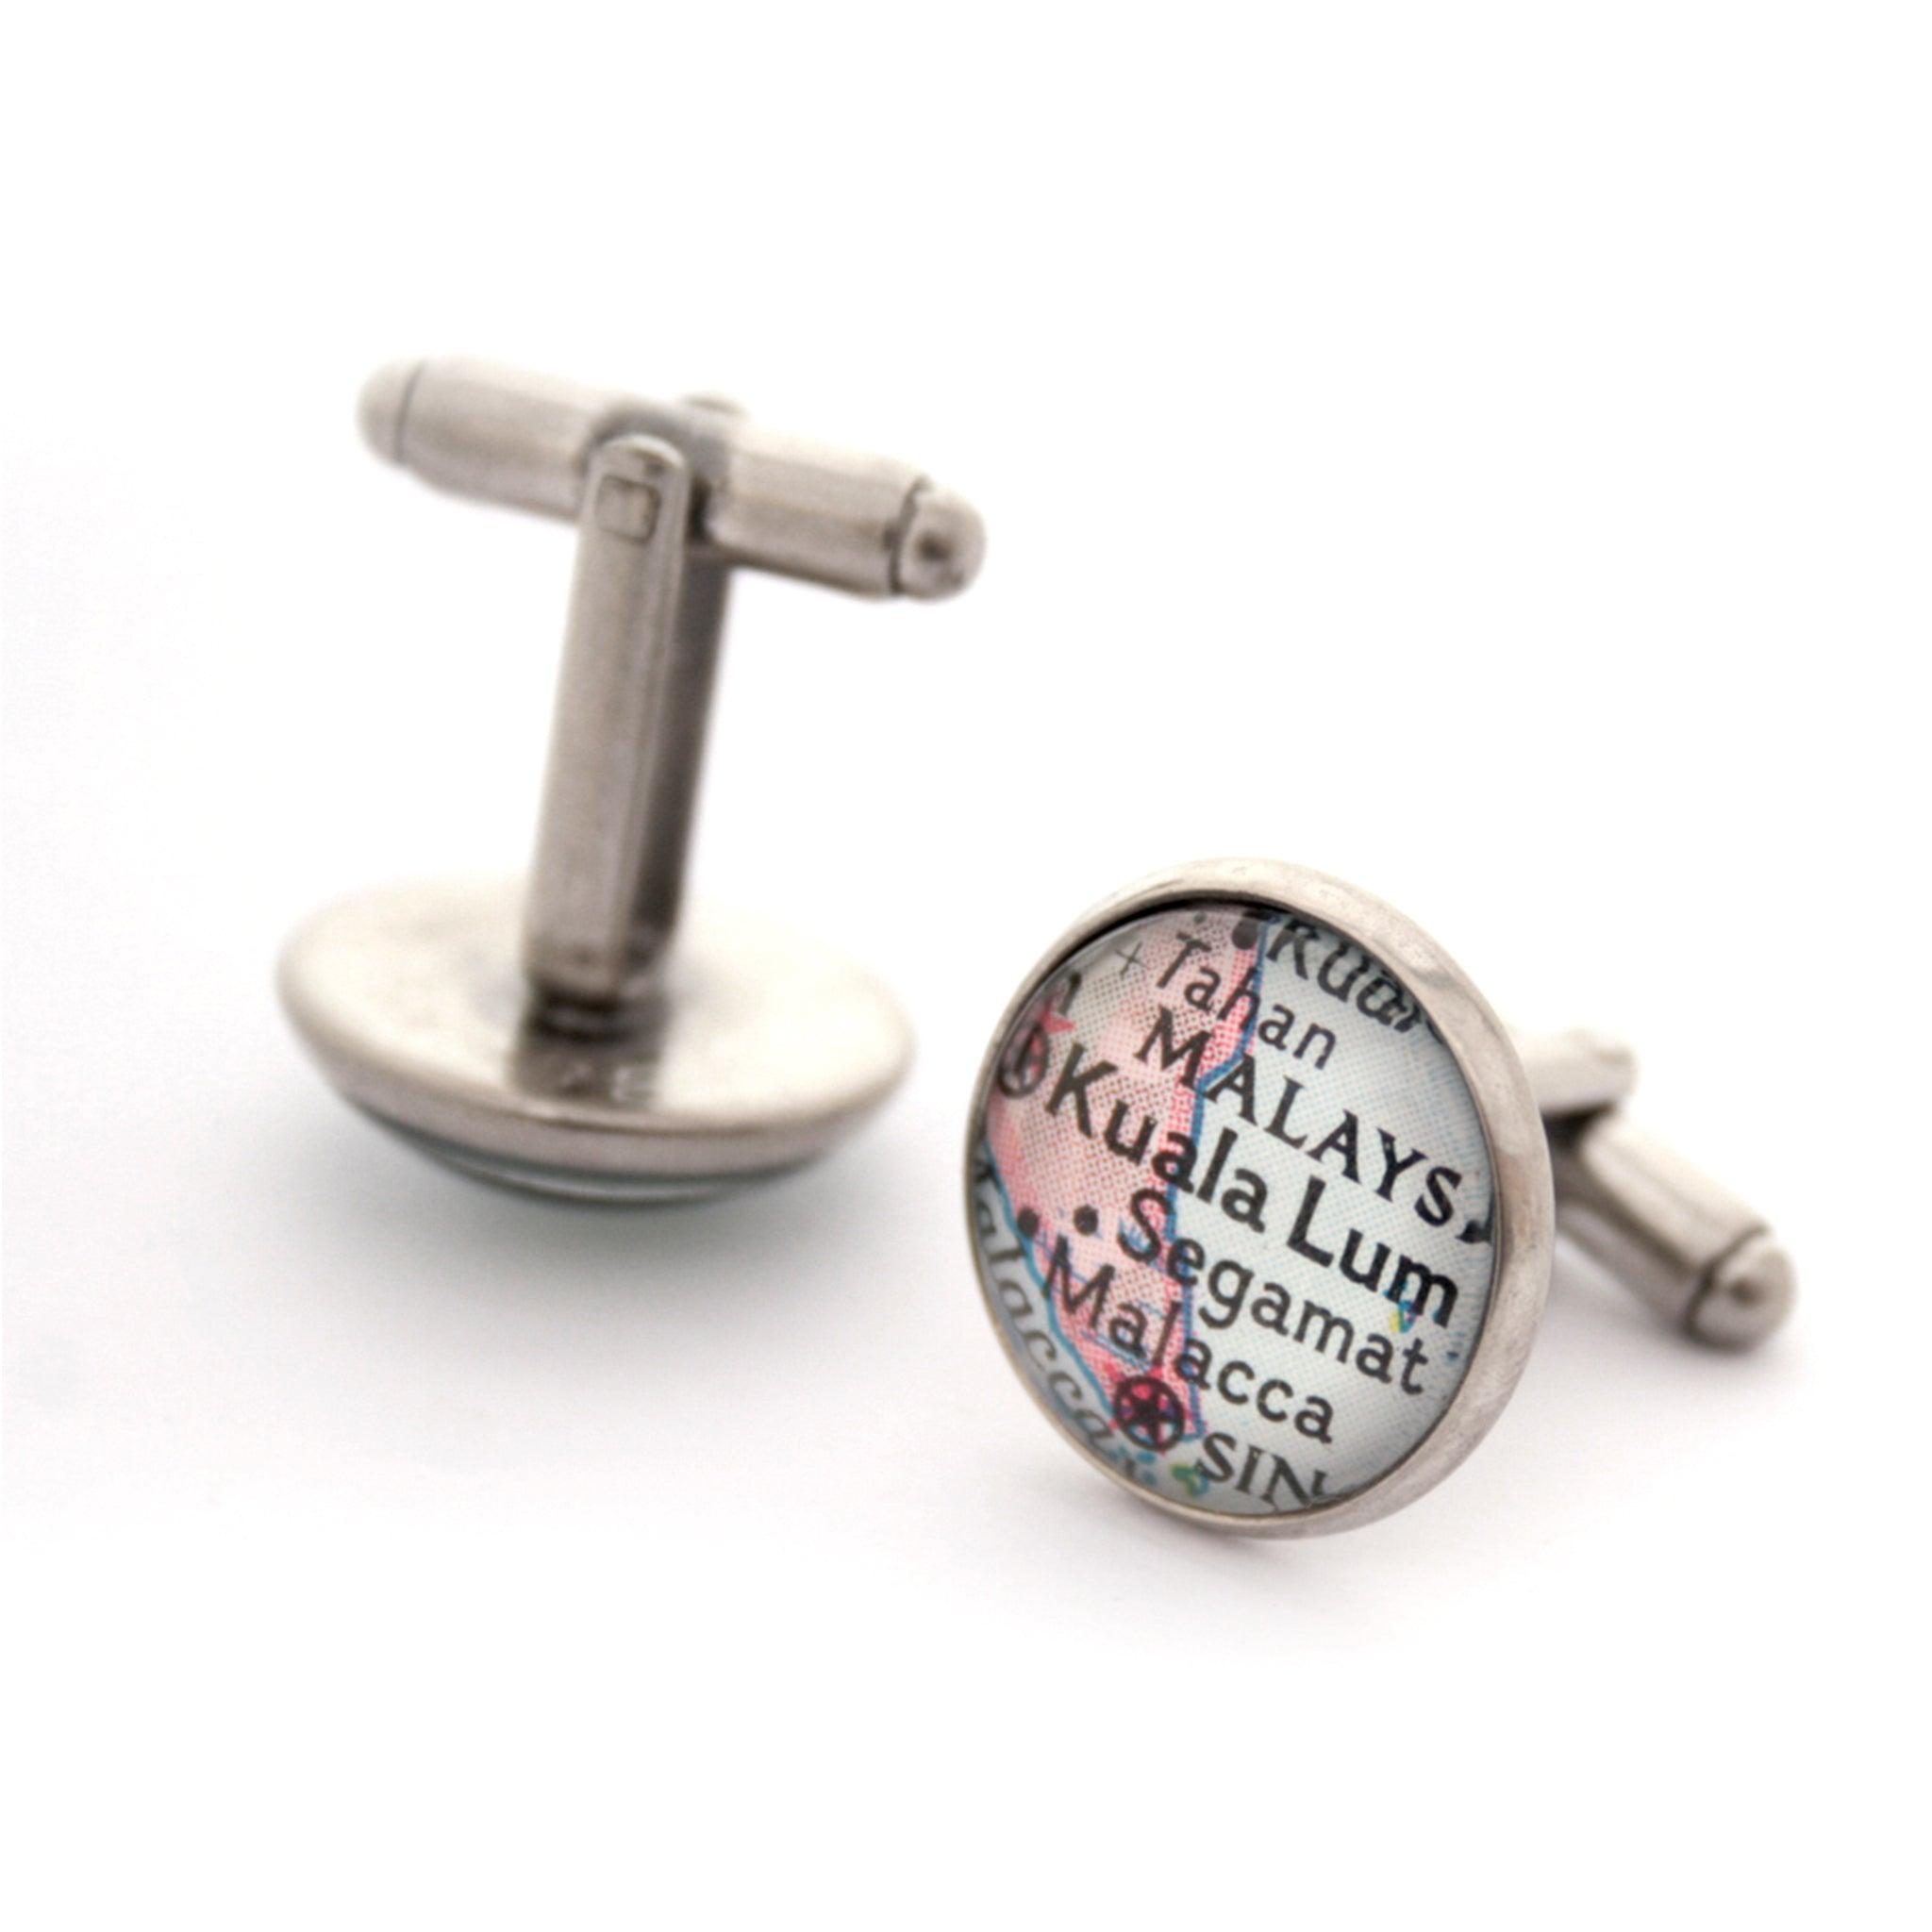 Personalised map cufflinks in antique silver colour featuring Kuala Lumpur